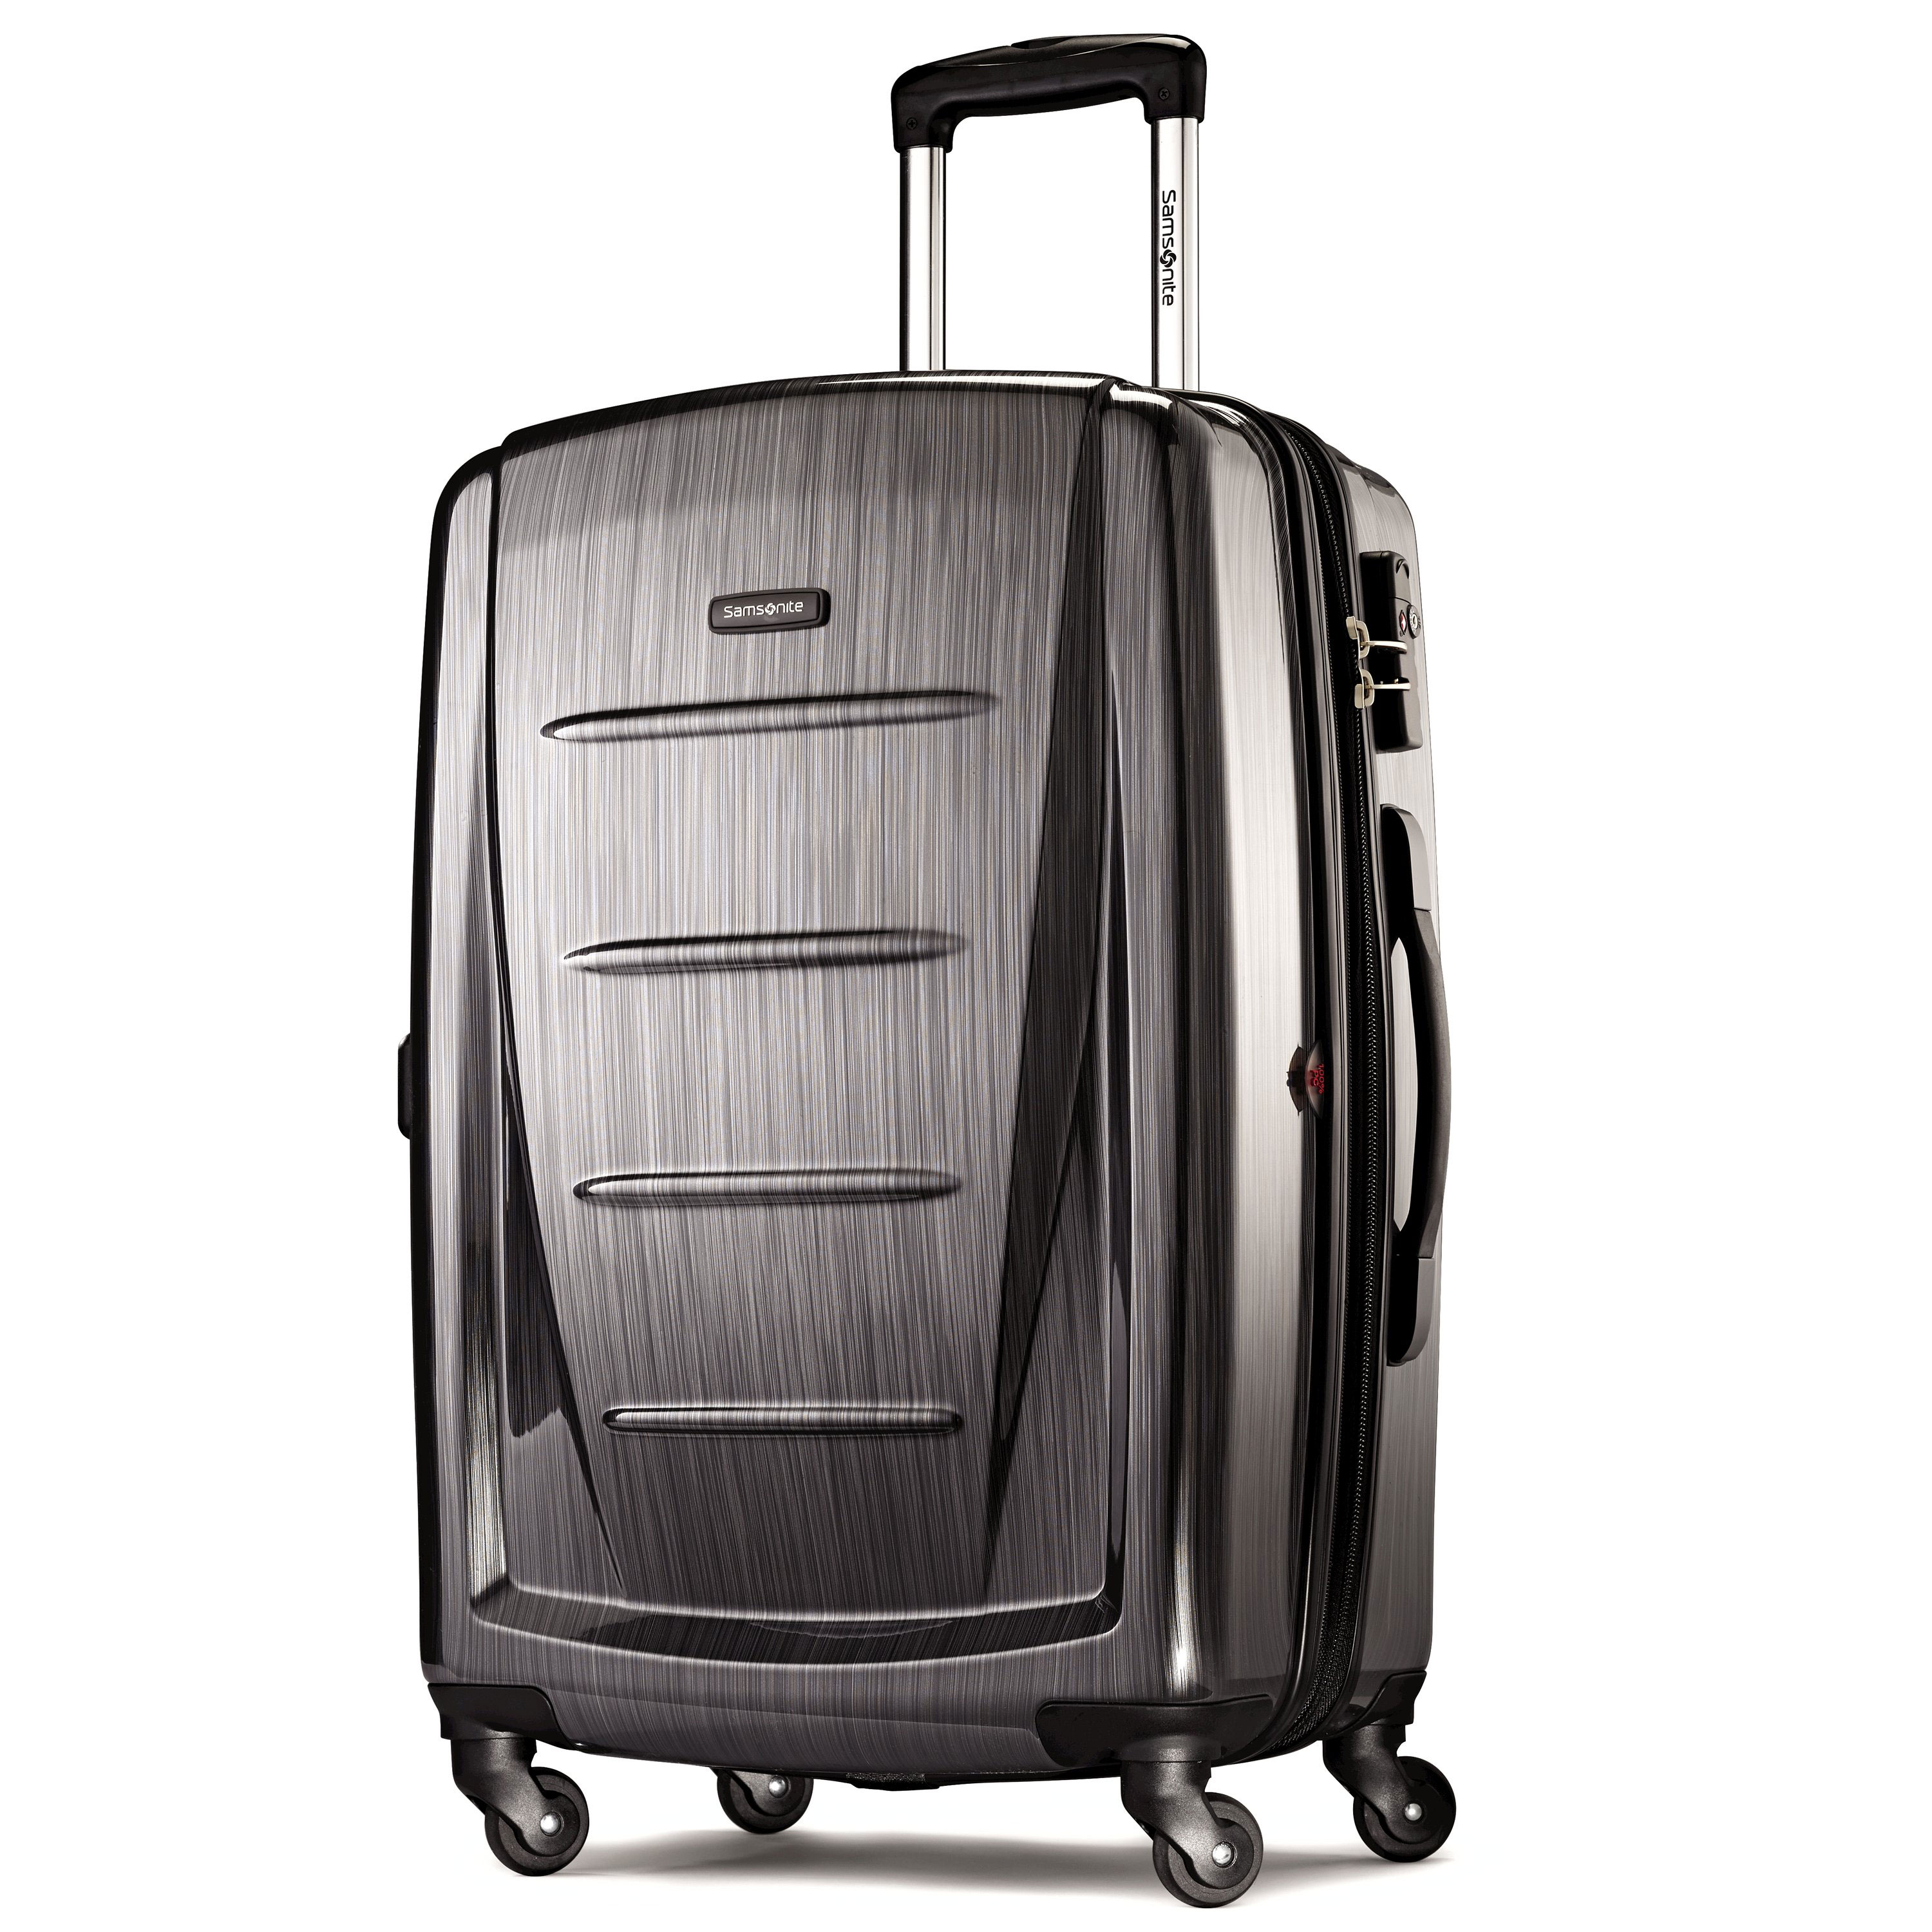 Samsonite-Winfield-2-Fashion-Spinner-Luggage thumbnail 13